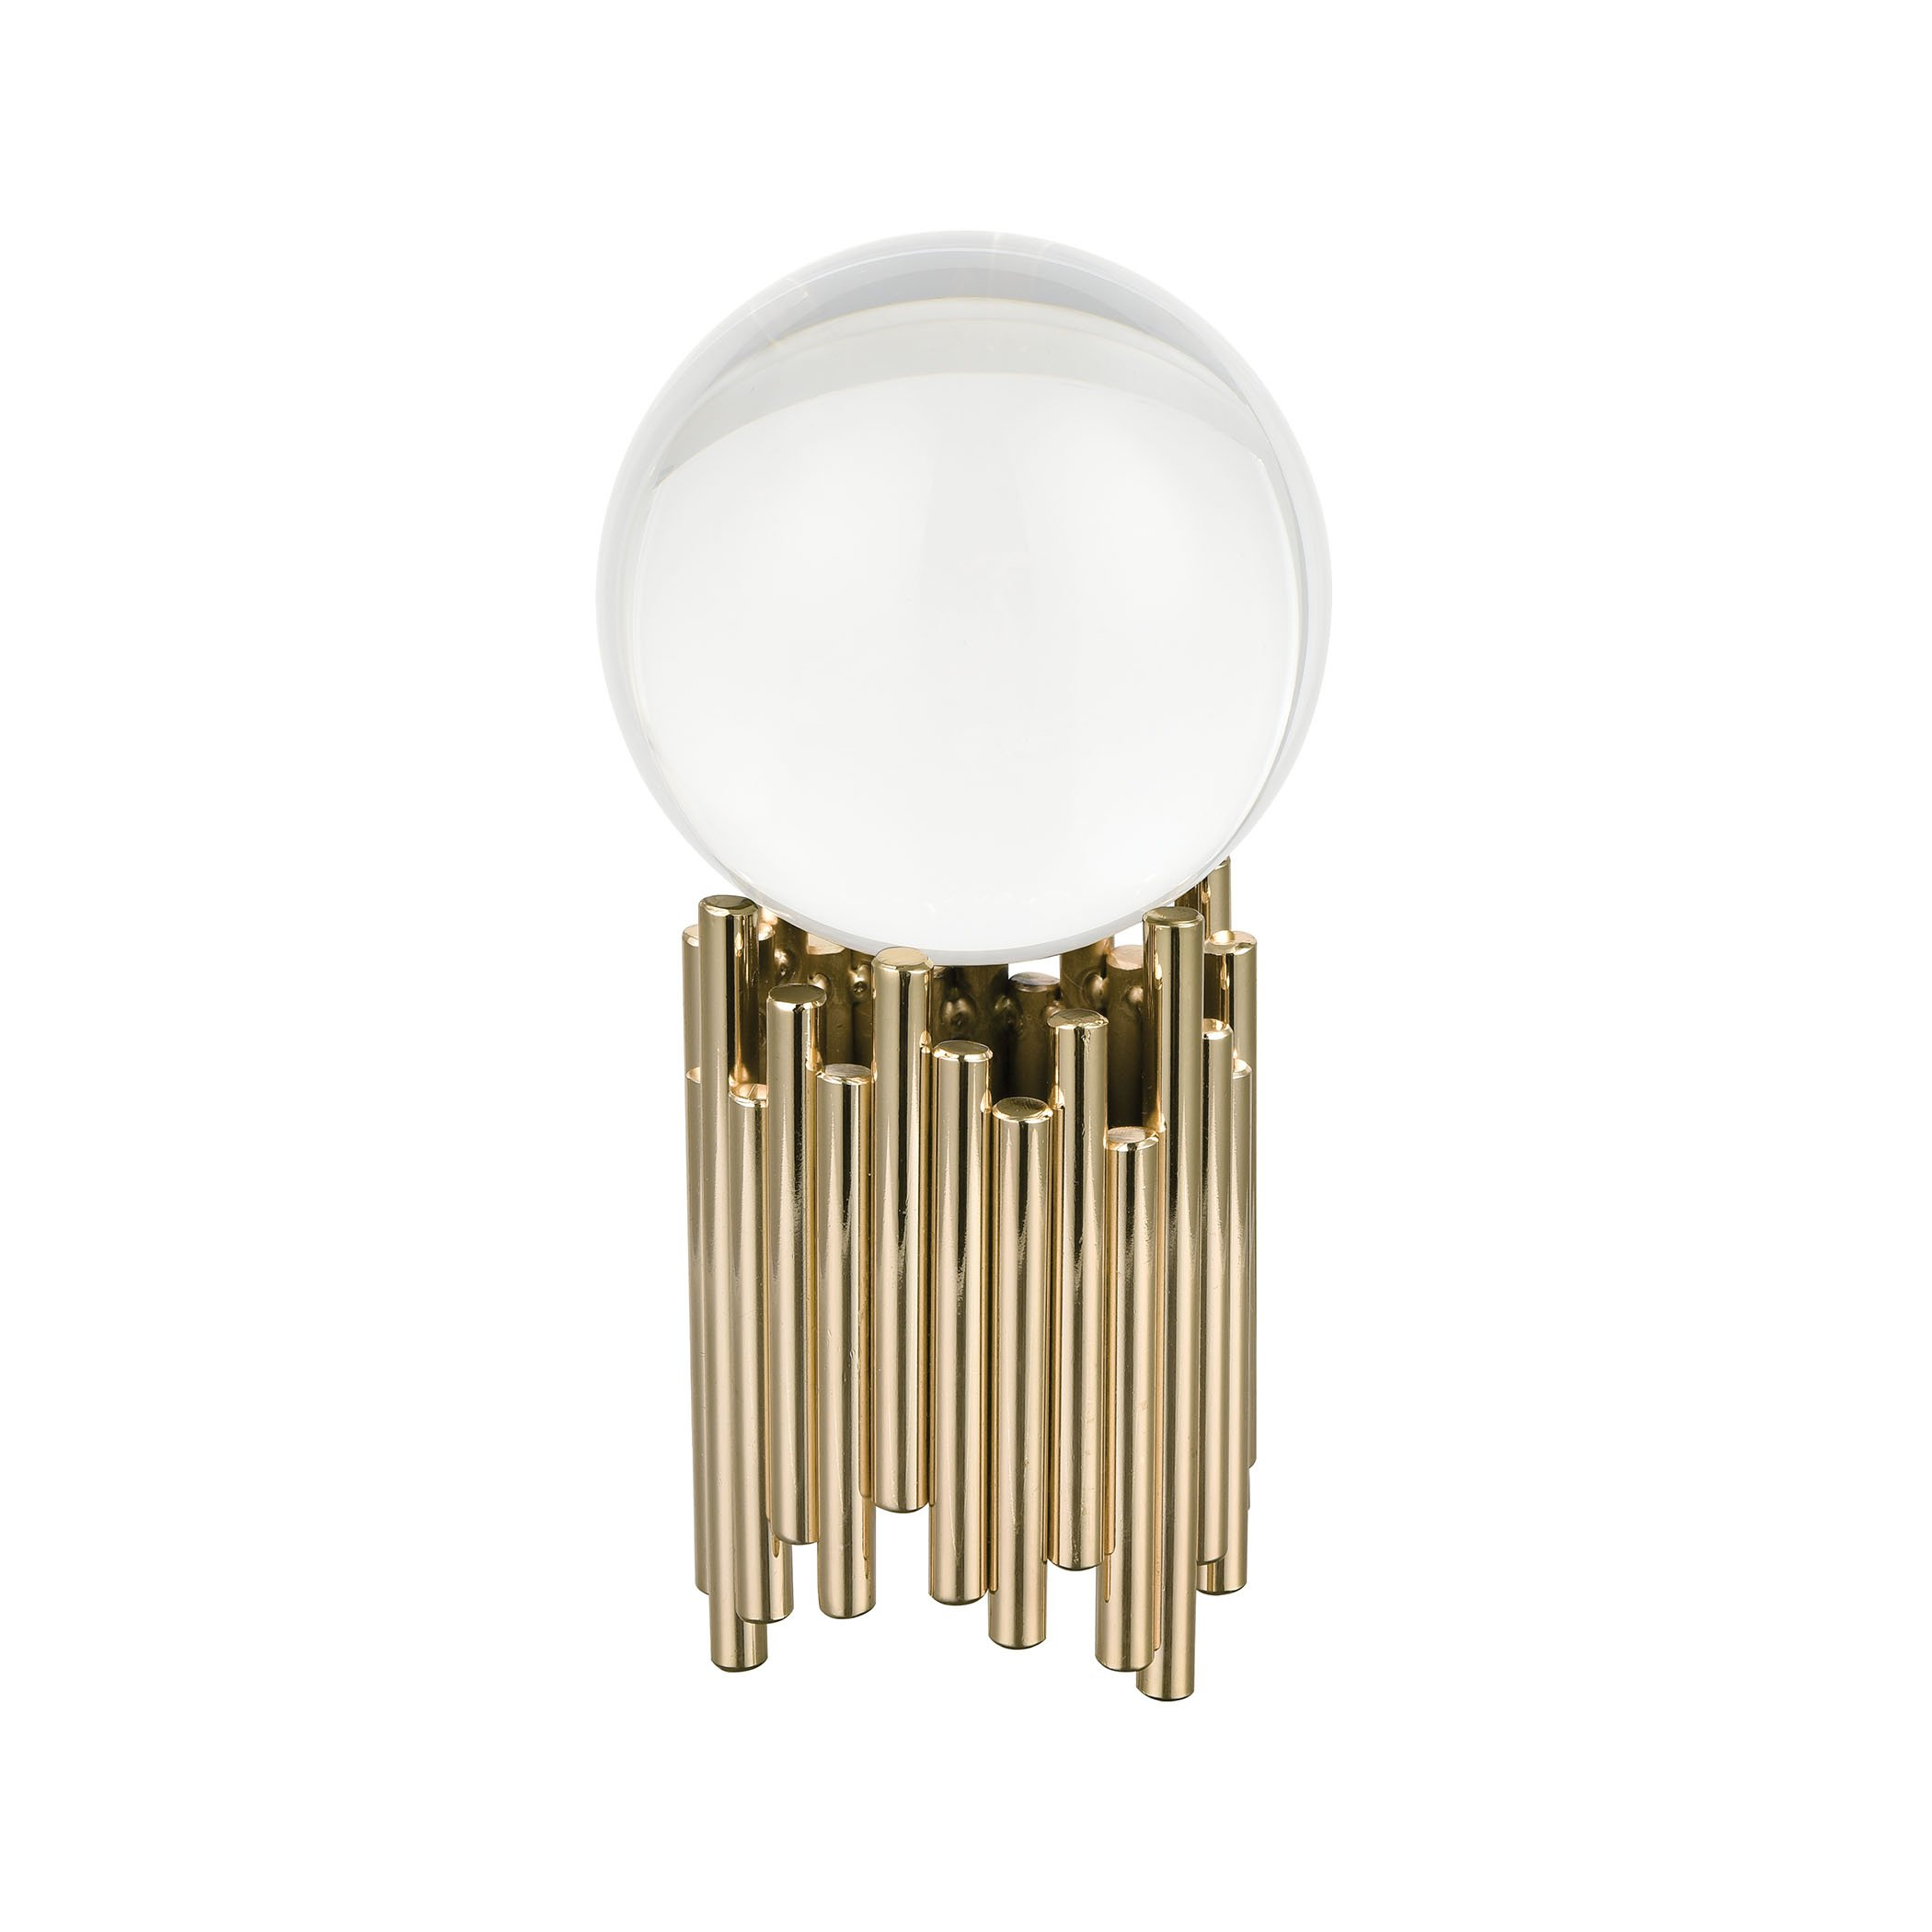 Sterling Industries Decorative Accessory in Gold Plated Finish